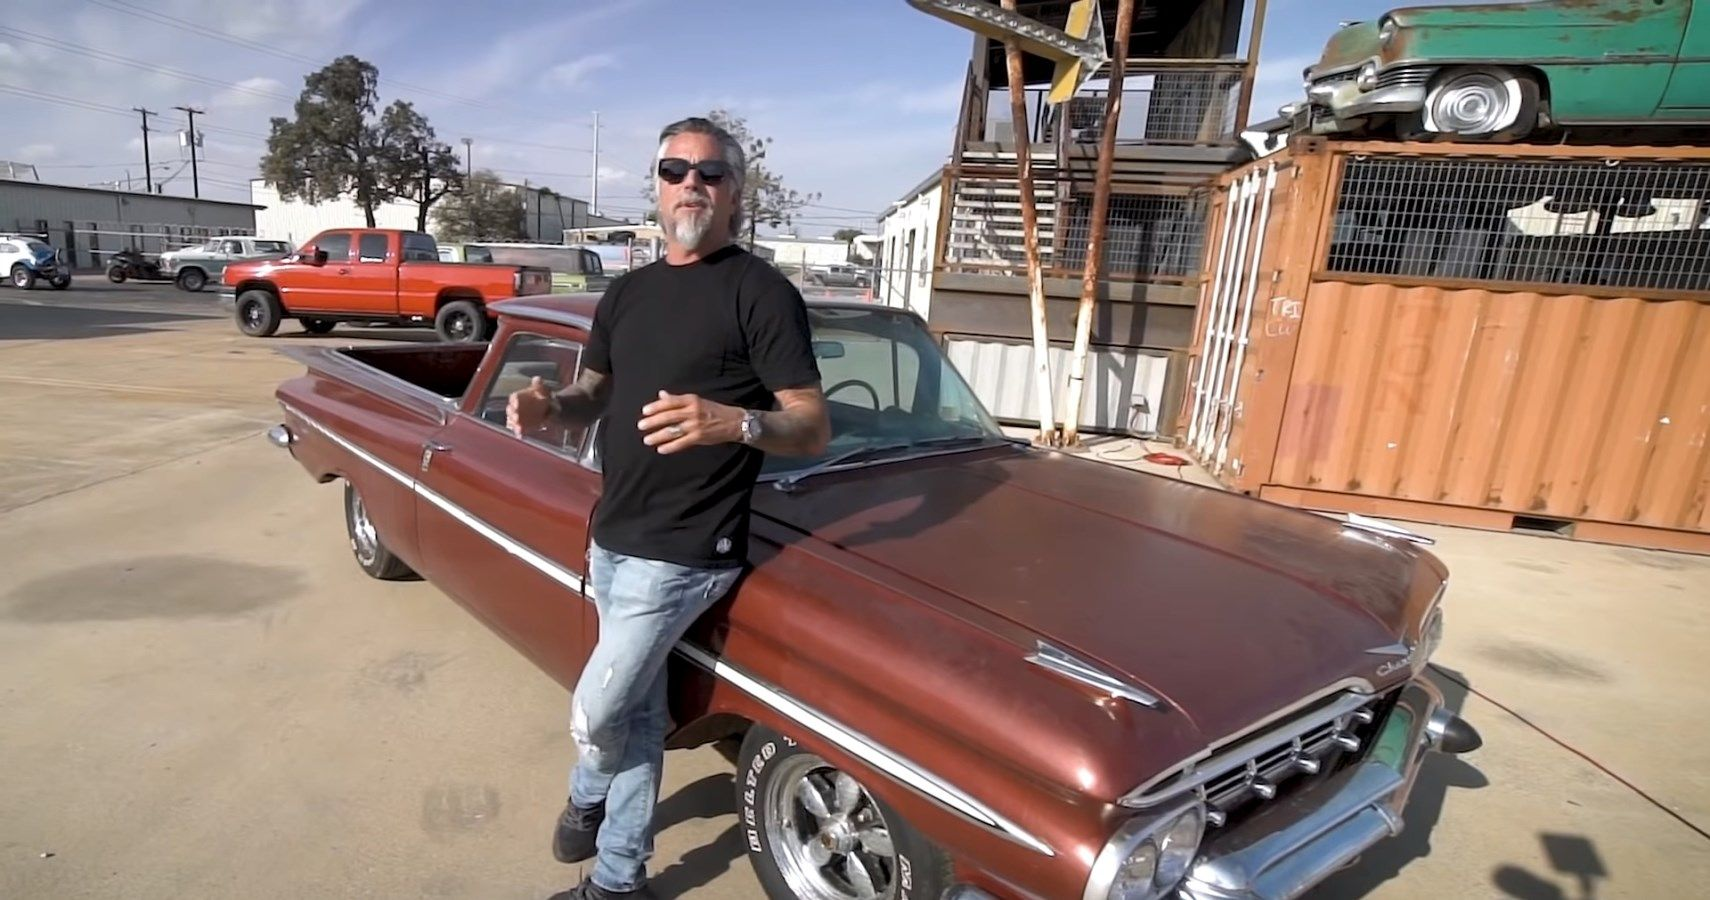 Richard Rawlings And Gas Monkey Garage Acquired This First-Gen El Camino Show Car